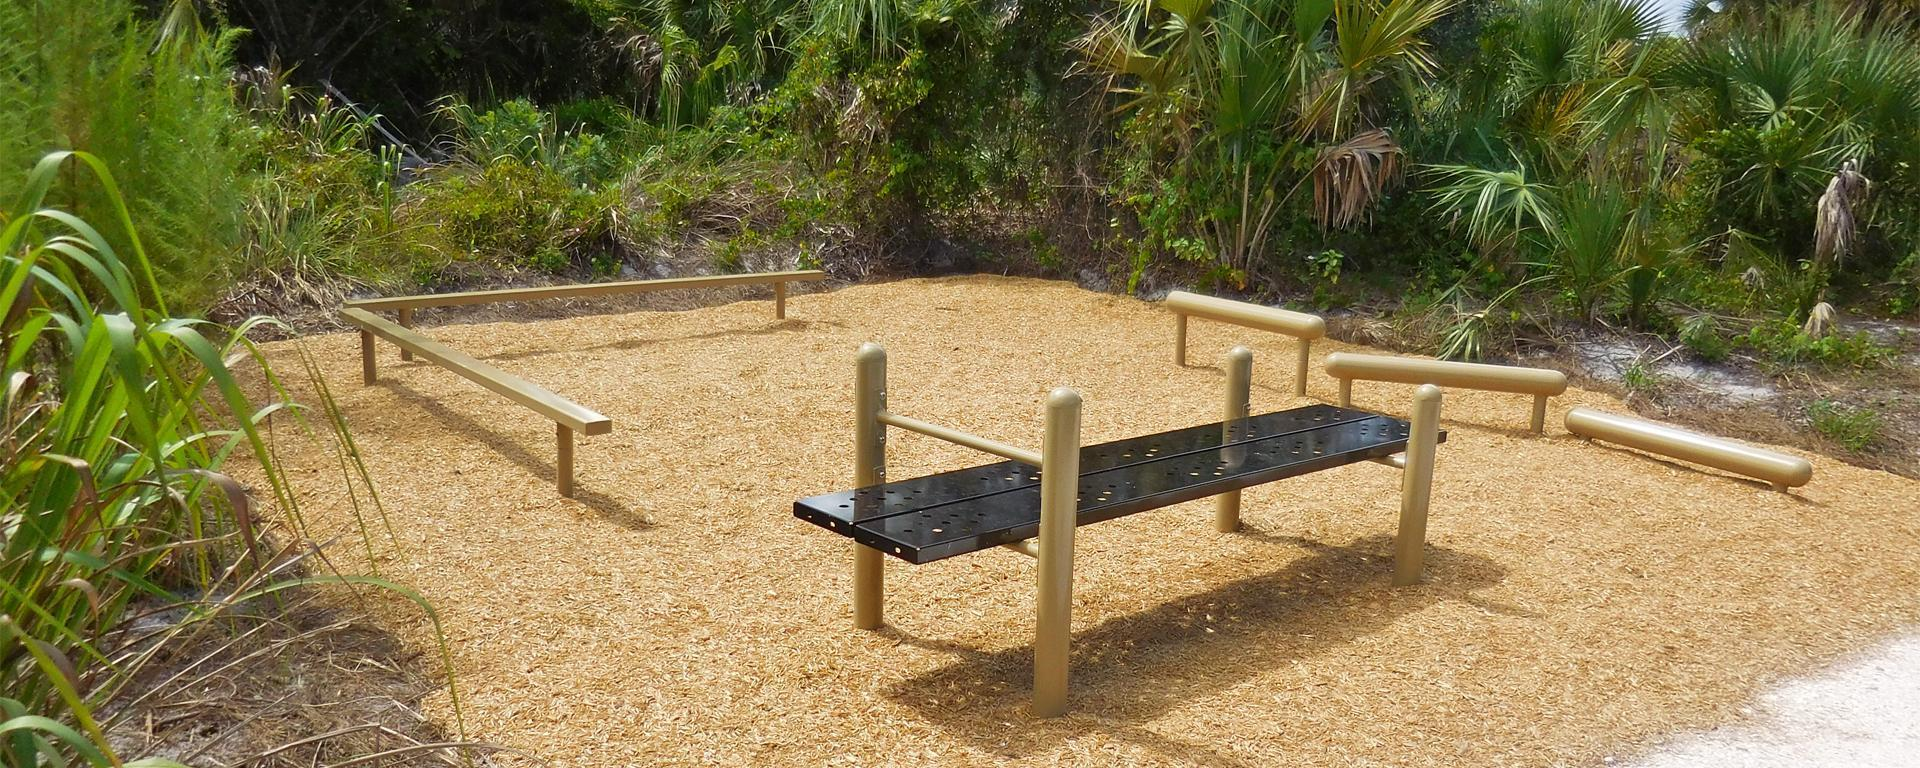 Exercise stations at Gomez Preserve